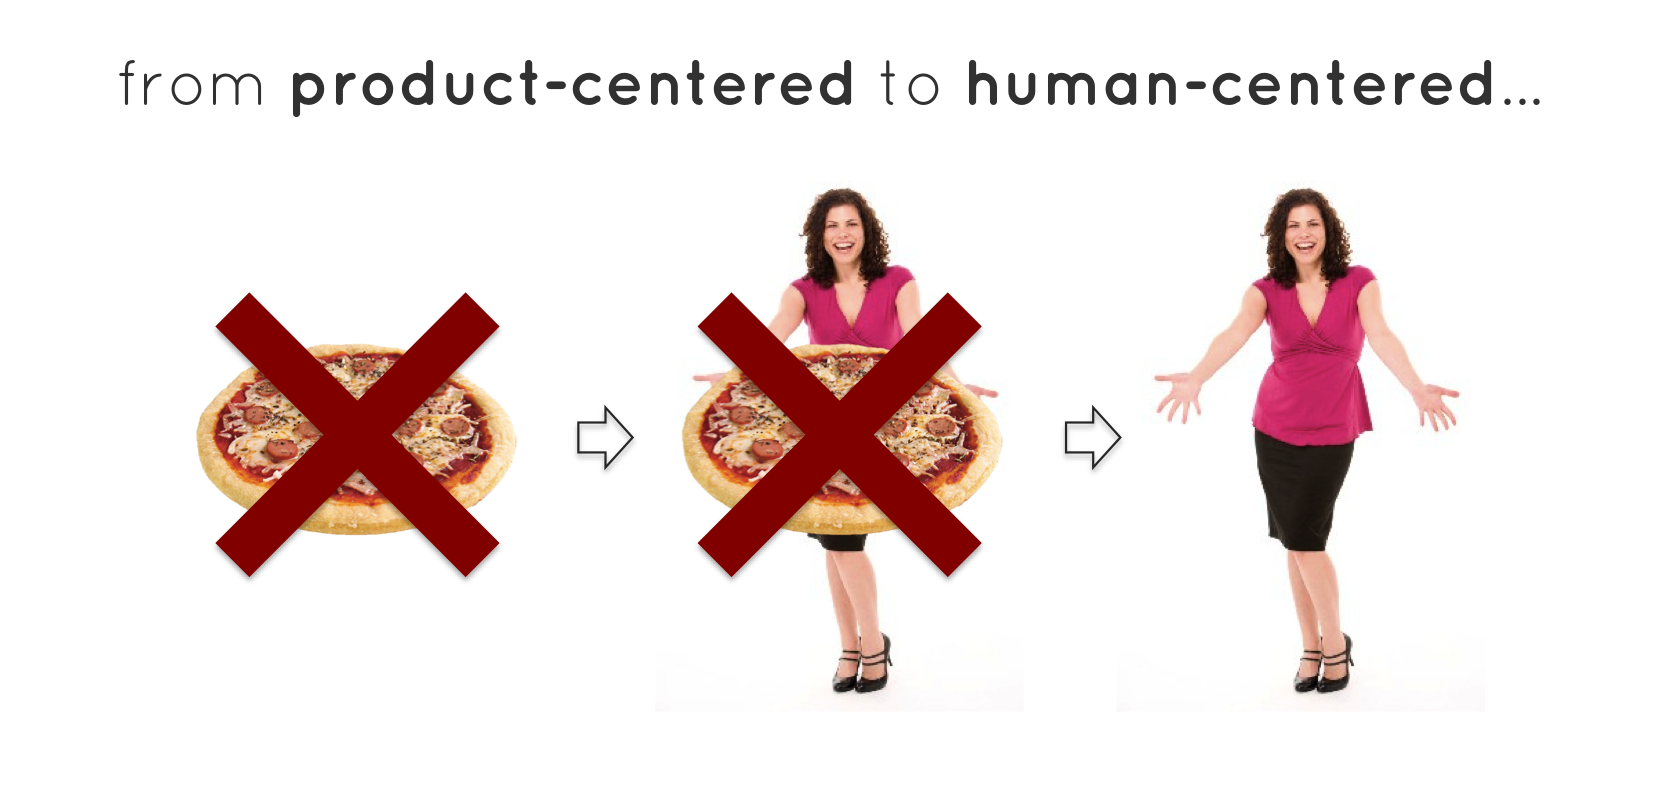 from product-centered to human-centered